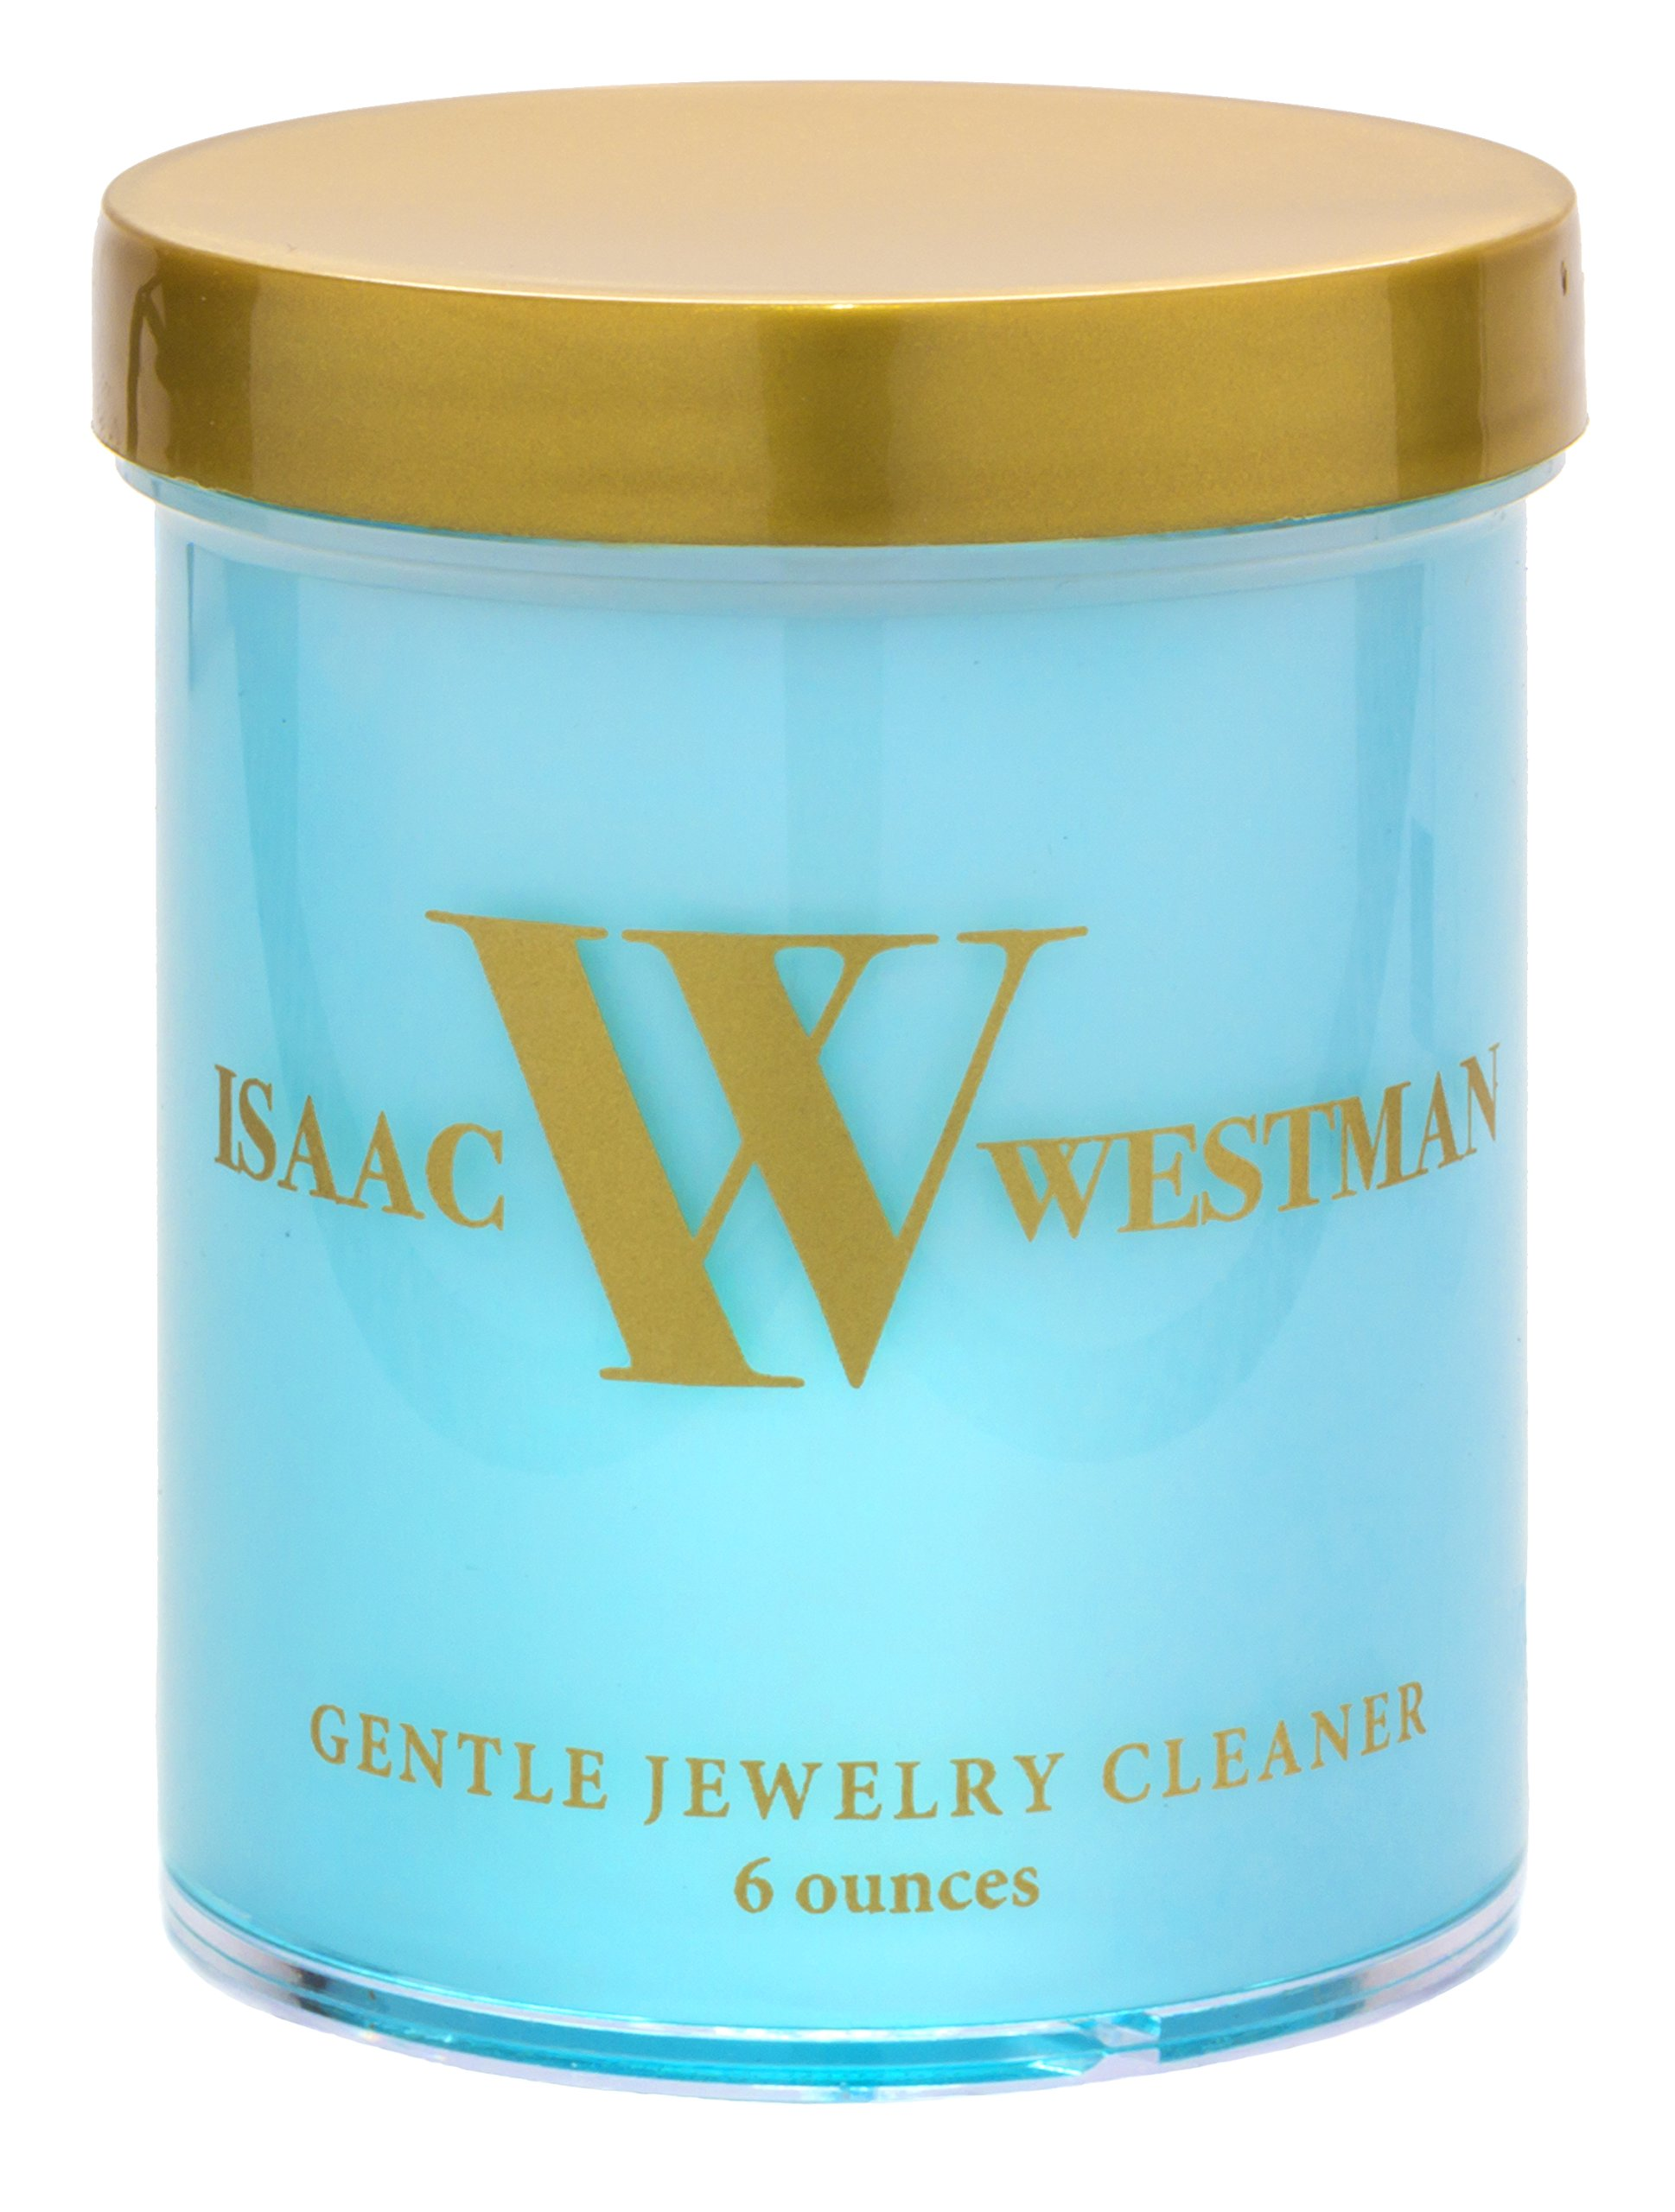 ISAAC WESTMAN Gentle Jewelry Cleaner Liquid | Safe Cleaning Solution For Fine & Fashion Jewelry | 6oz | Dip Tray & Brush